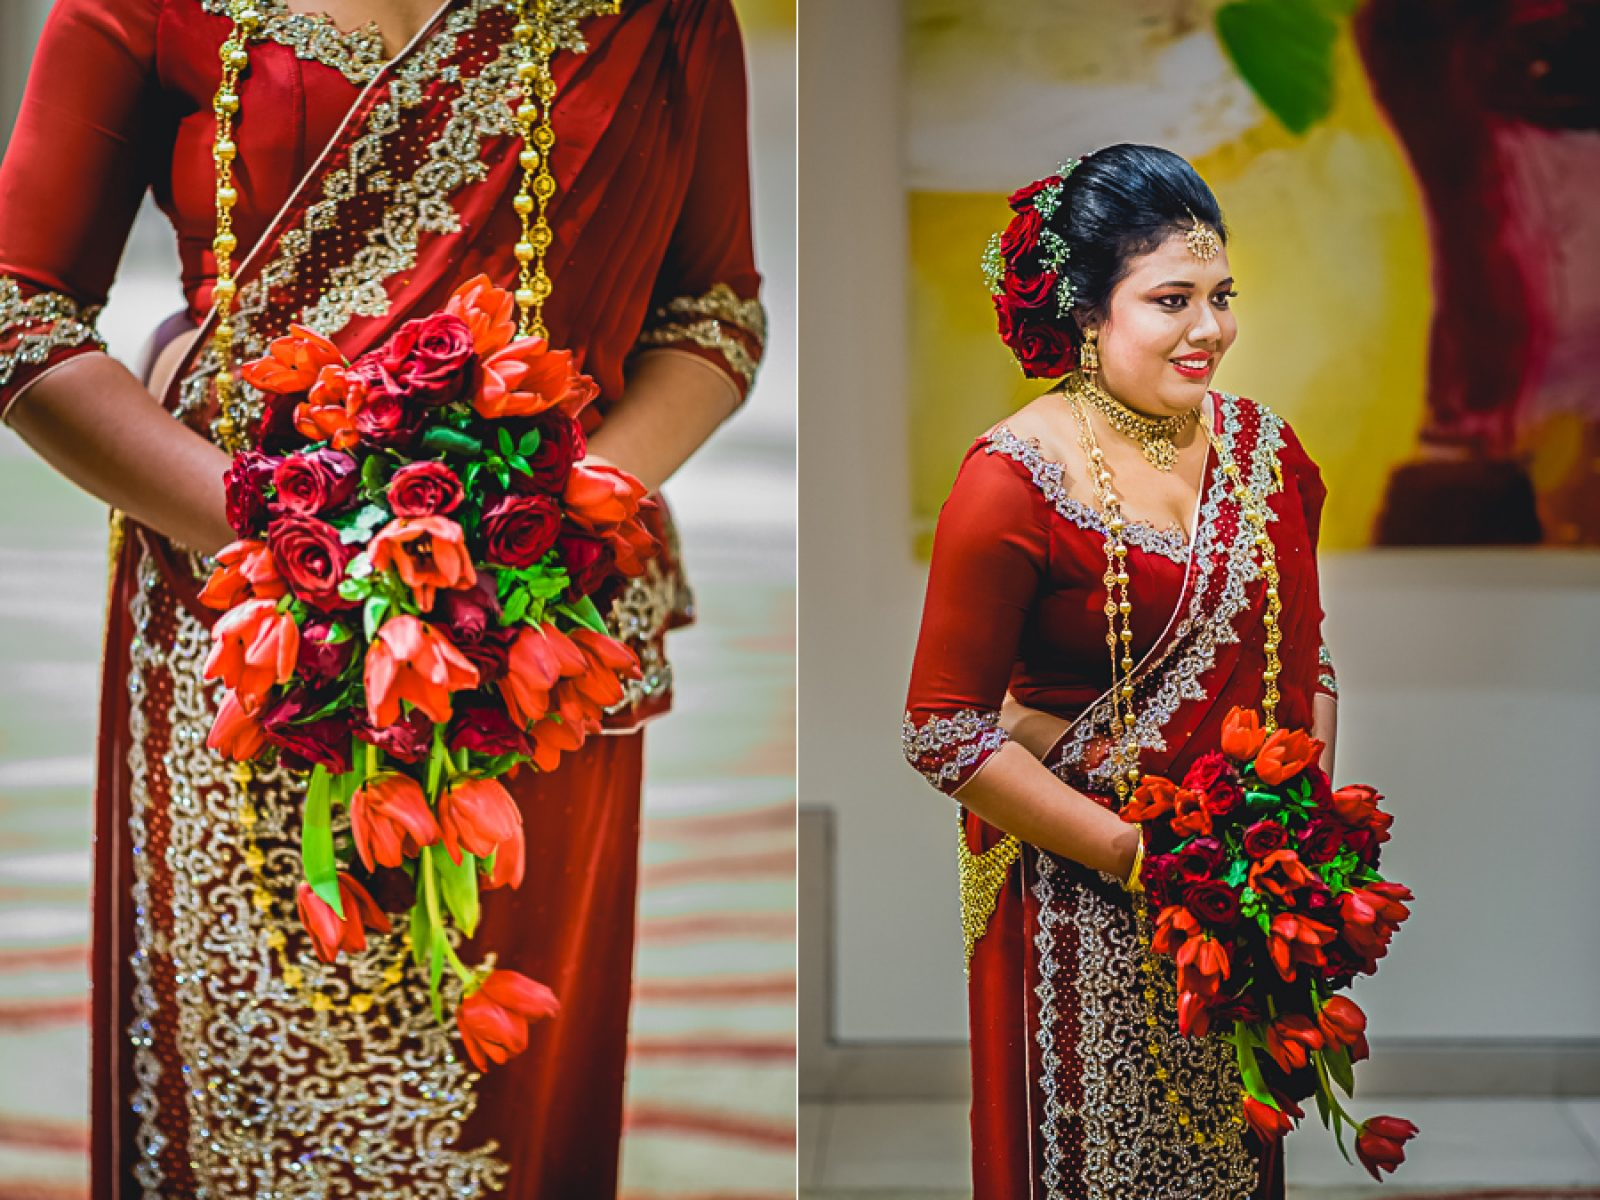 67 1600x1200 - Darshani and Anthony - wedding photographer in London